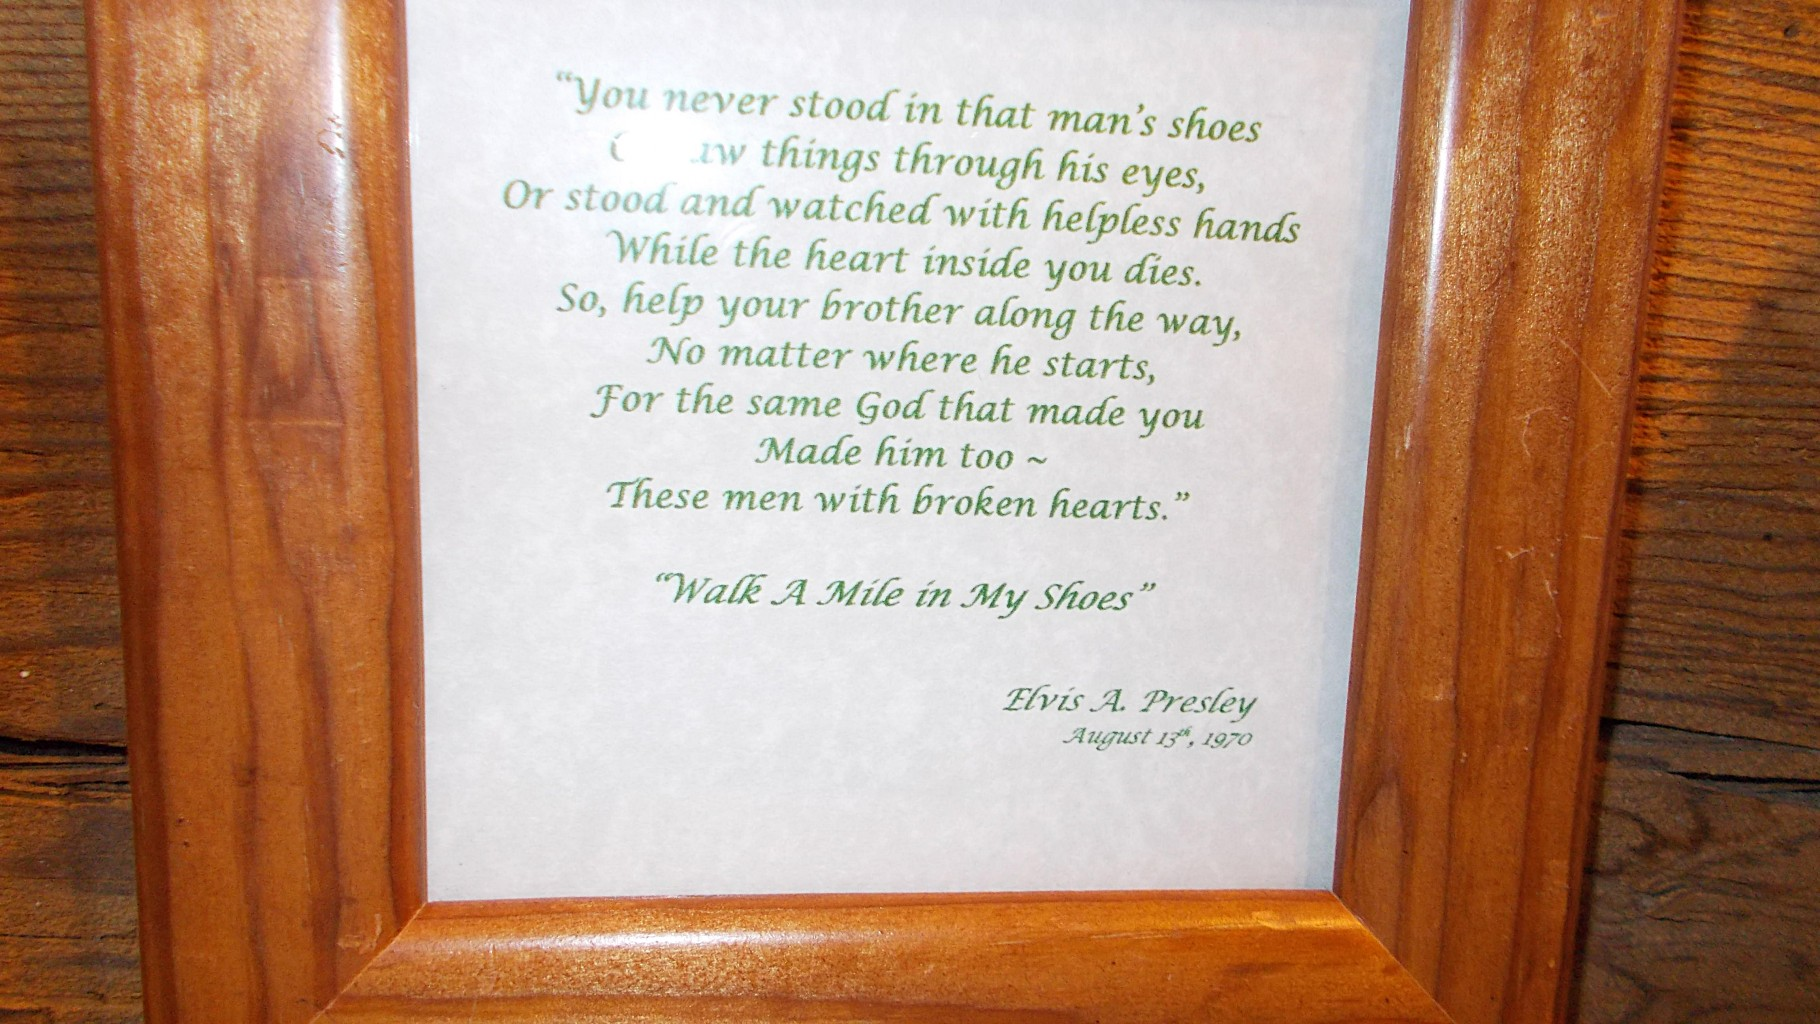 Walk A Mile In My Shoes by Elvis plaque